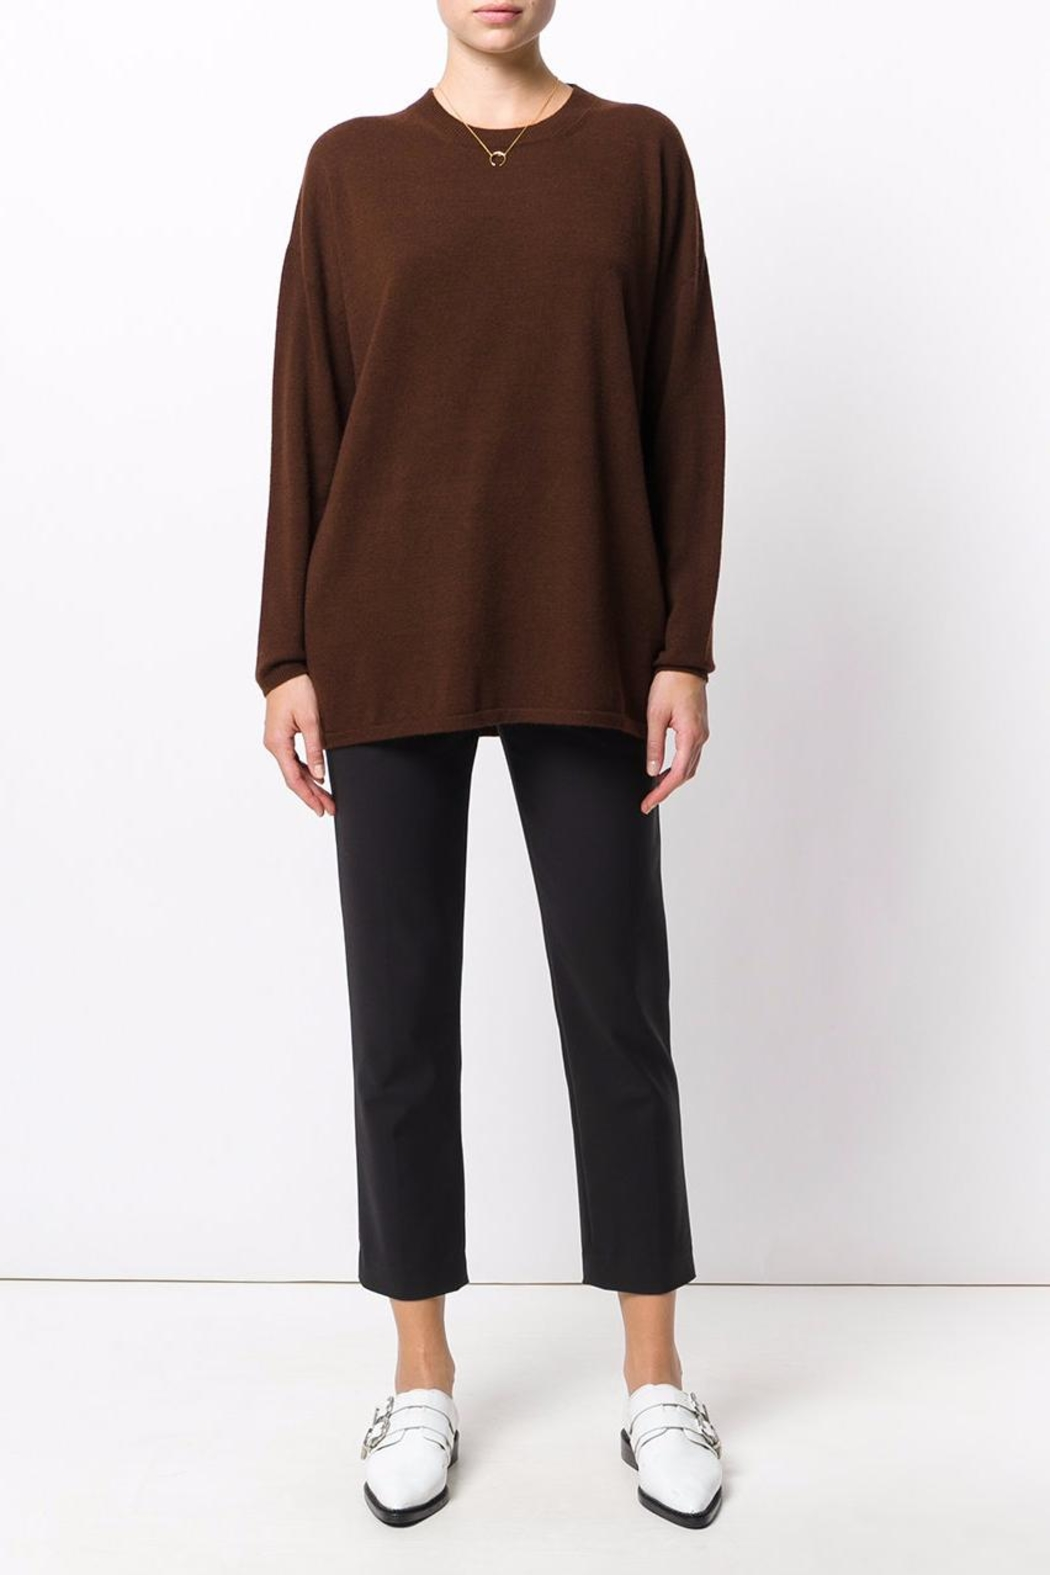 Roberto Collina Round Neck Sweater - Front Cropped Image